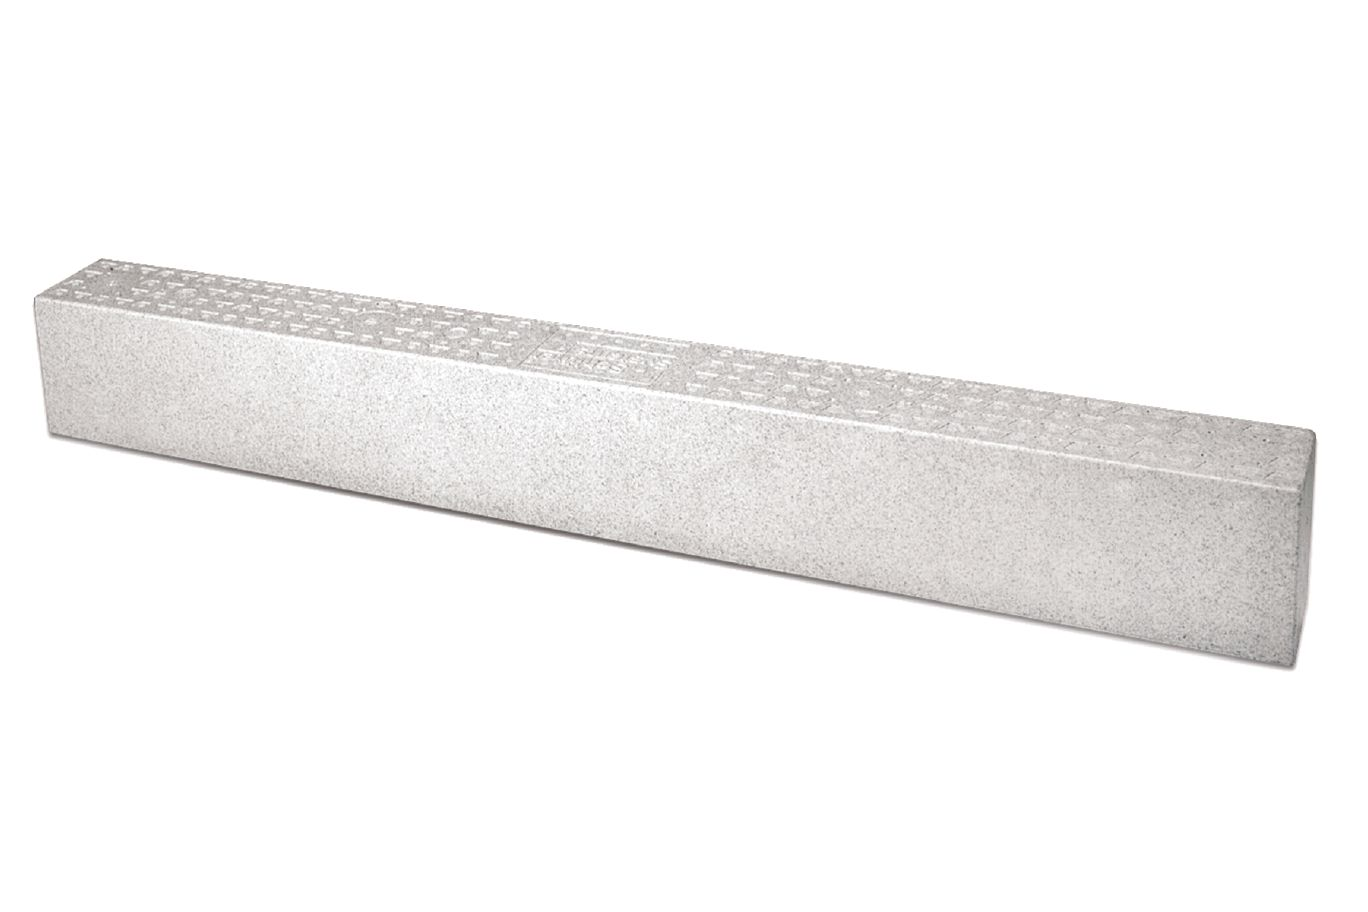 Kerdi Shower Curb 48 Inch by Schluter Systems